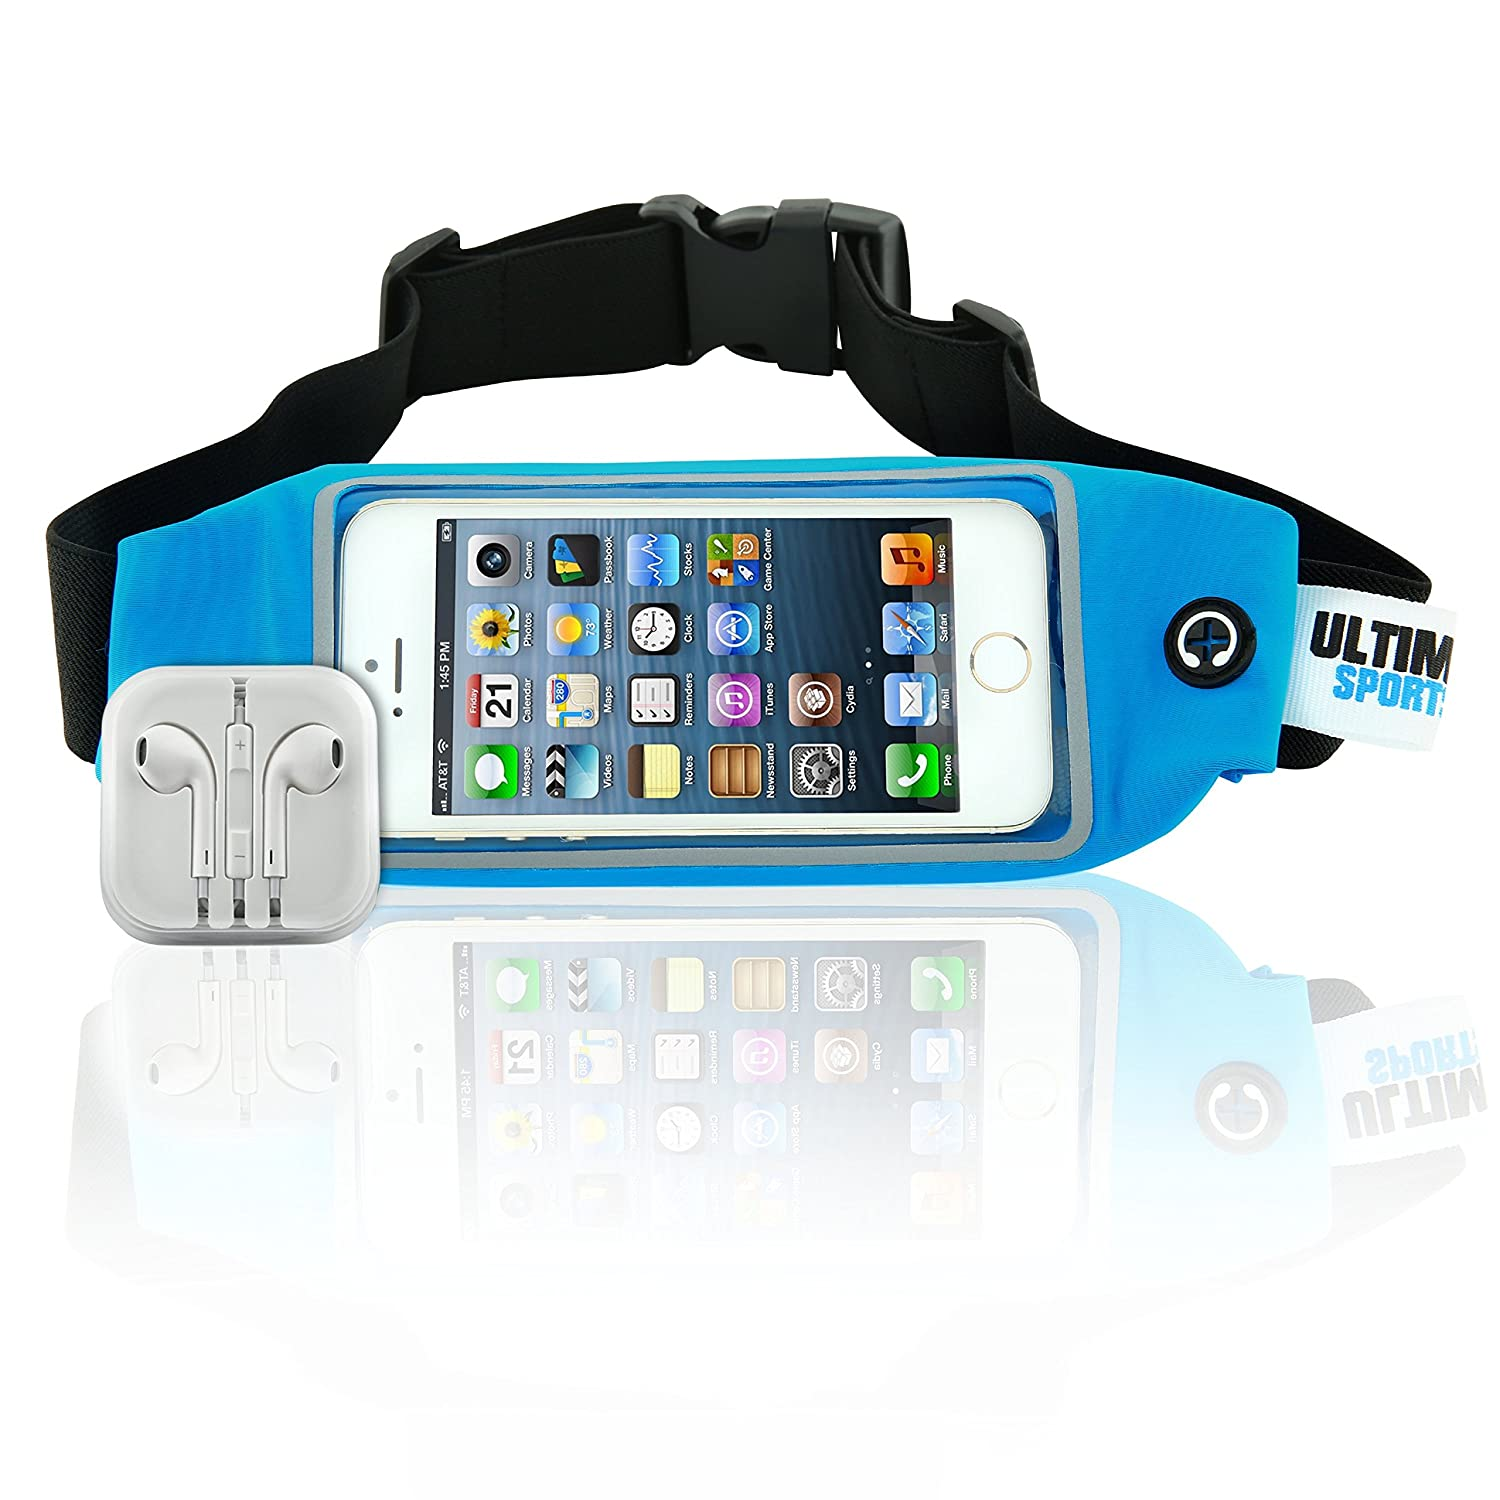 Ultimate Sports Pro Running Belt Waist Pack with Free Earbuds – Blue 4.7 Inches